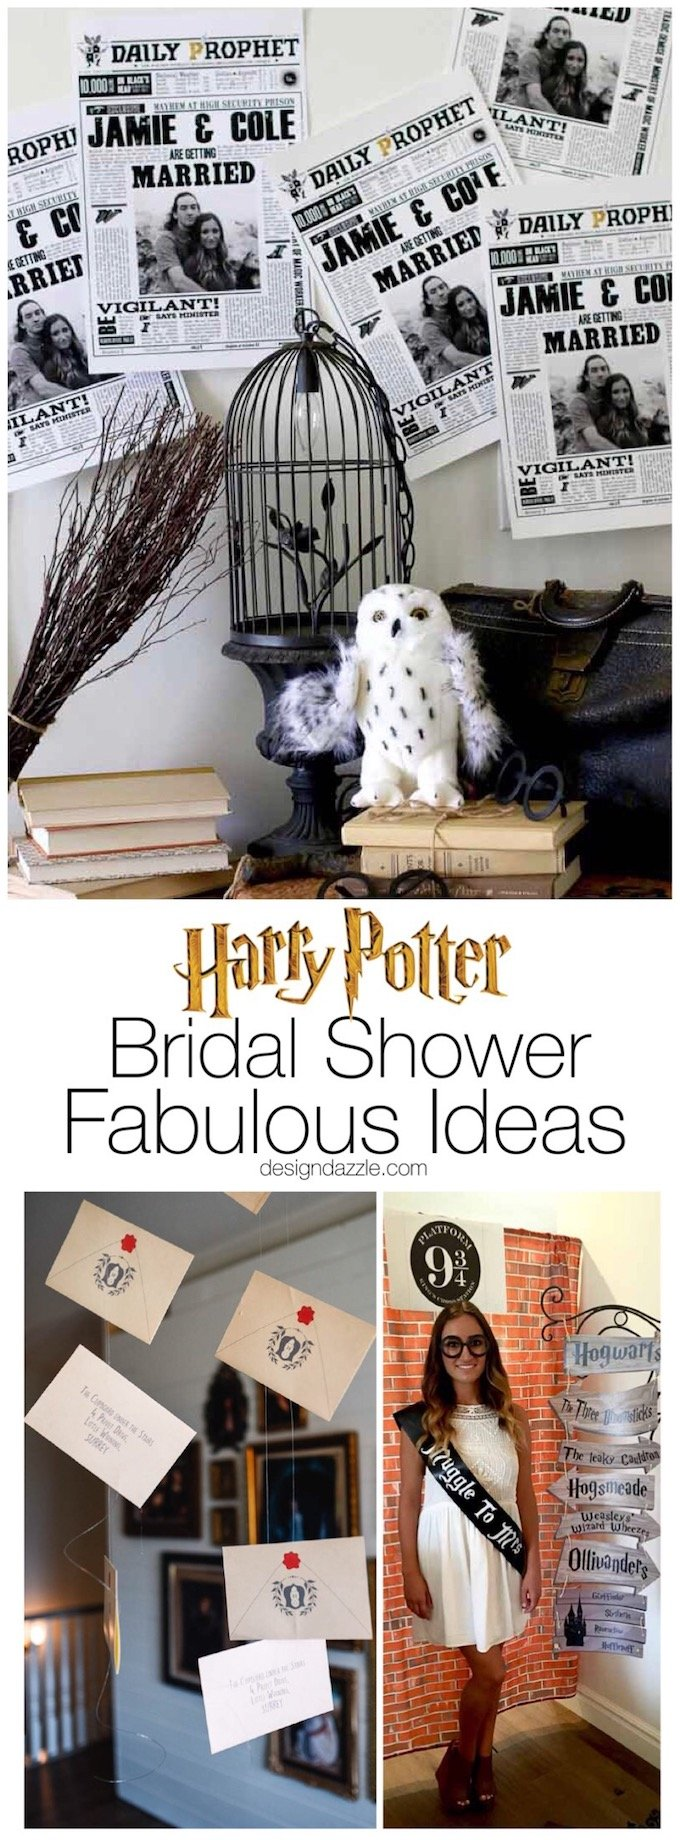 "Is your bride to be a Harry Potter fanatic? This Harry Potter themed bridal shower will make her ""Muggle to Mrs."" dreams come true! 